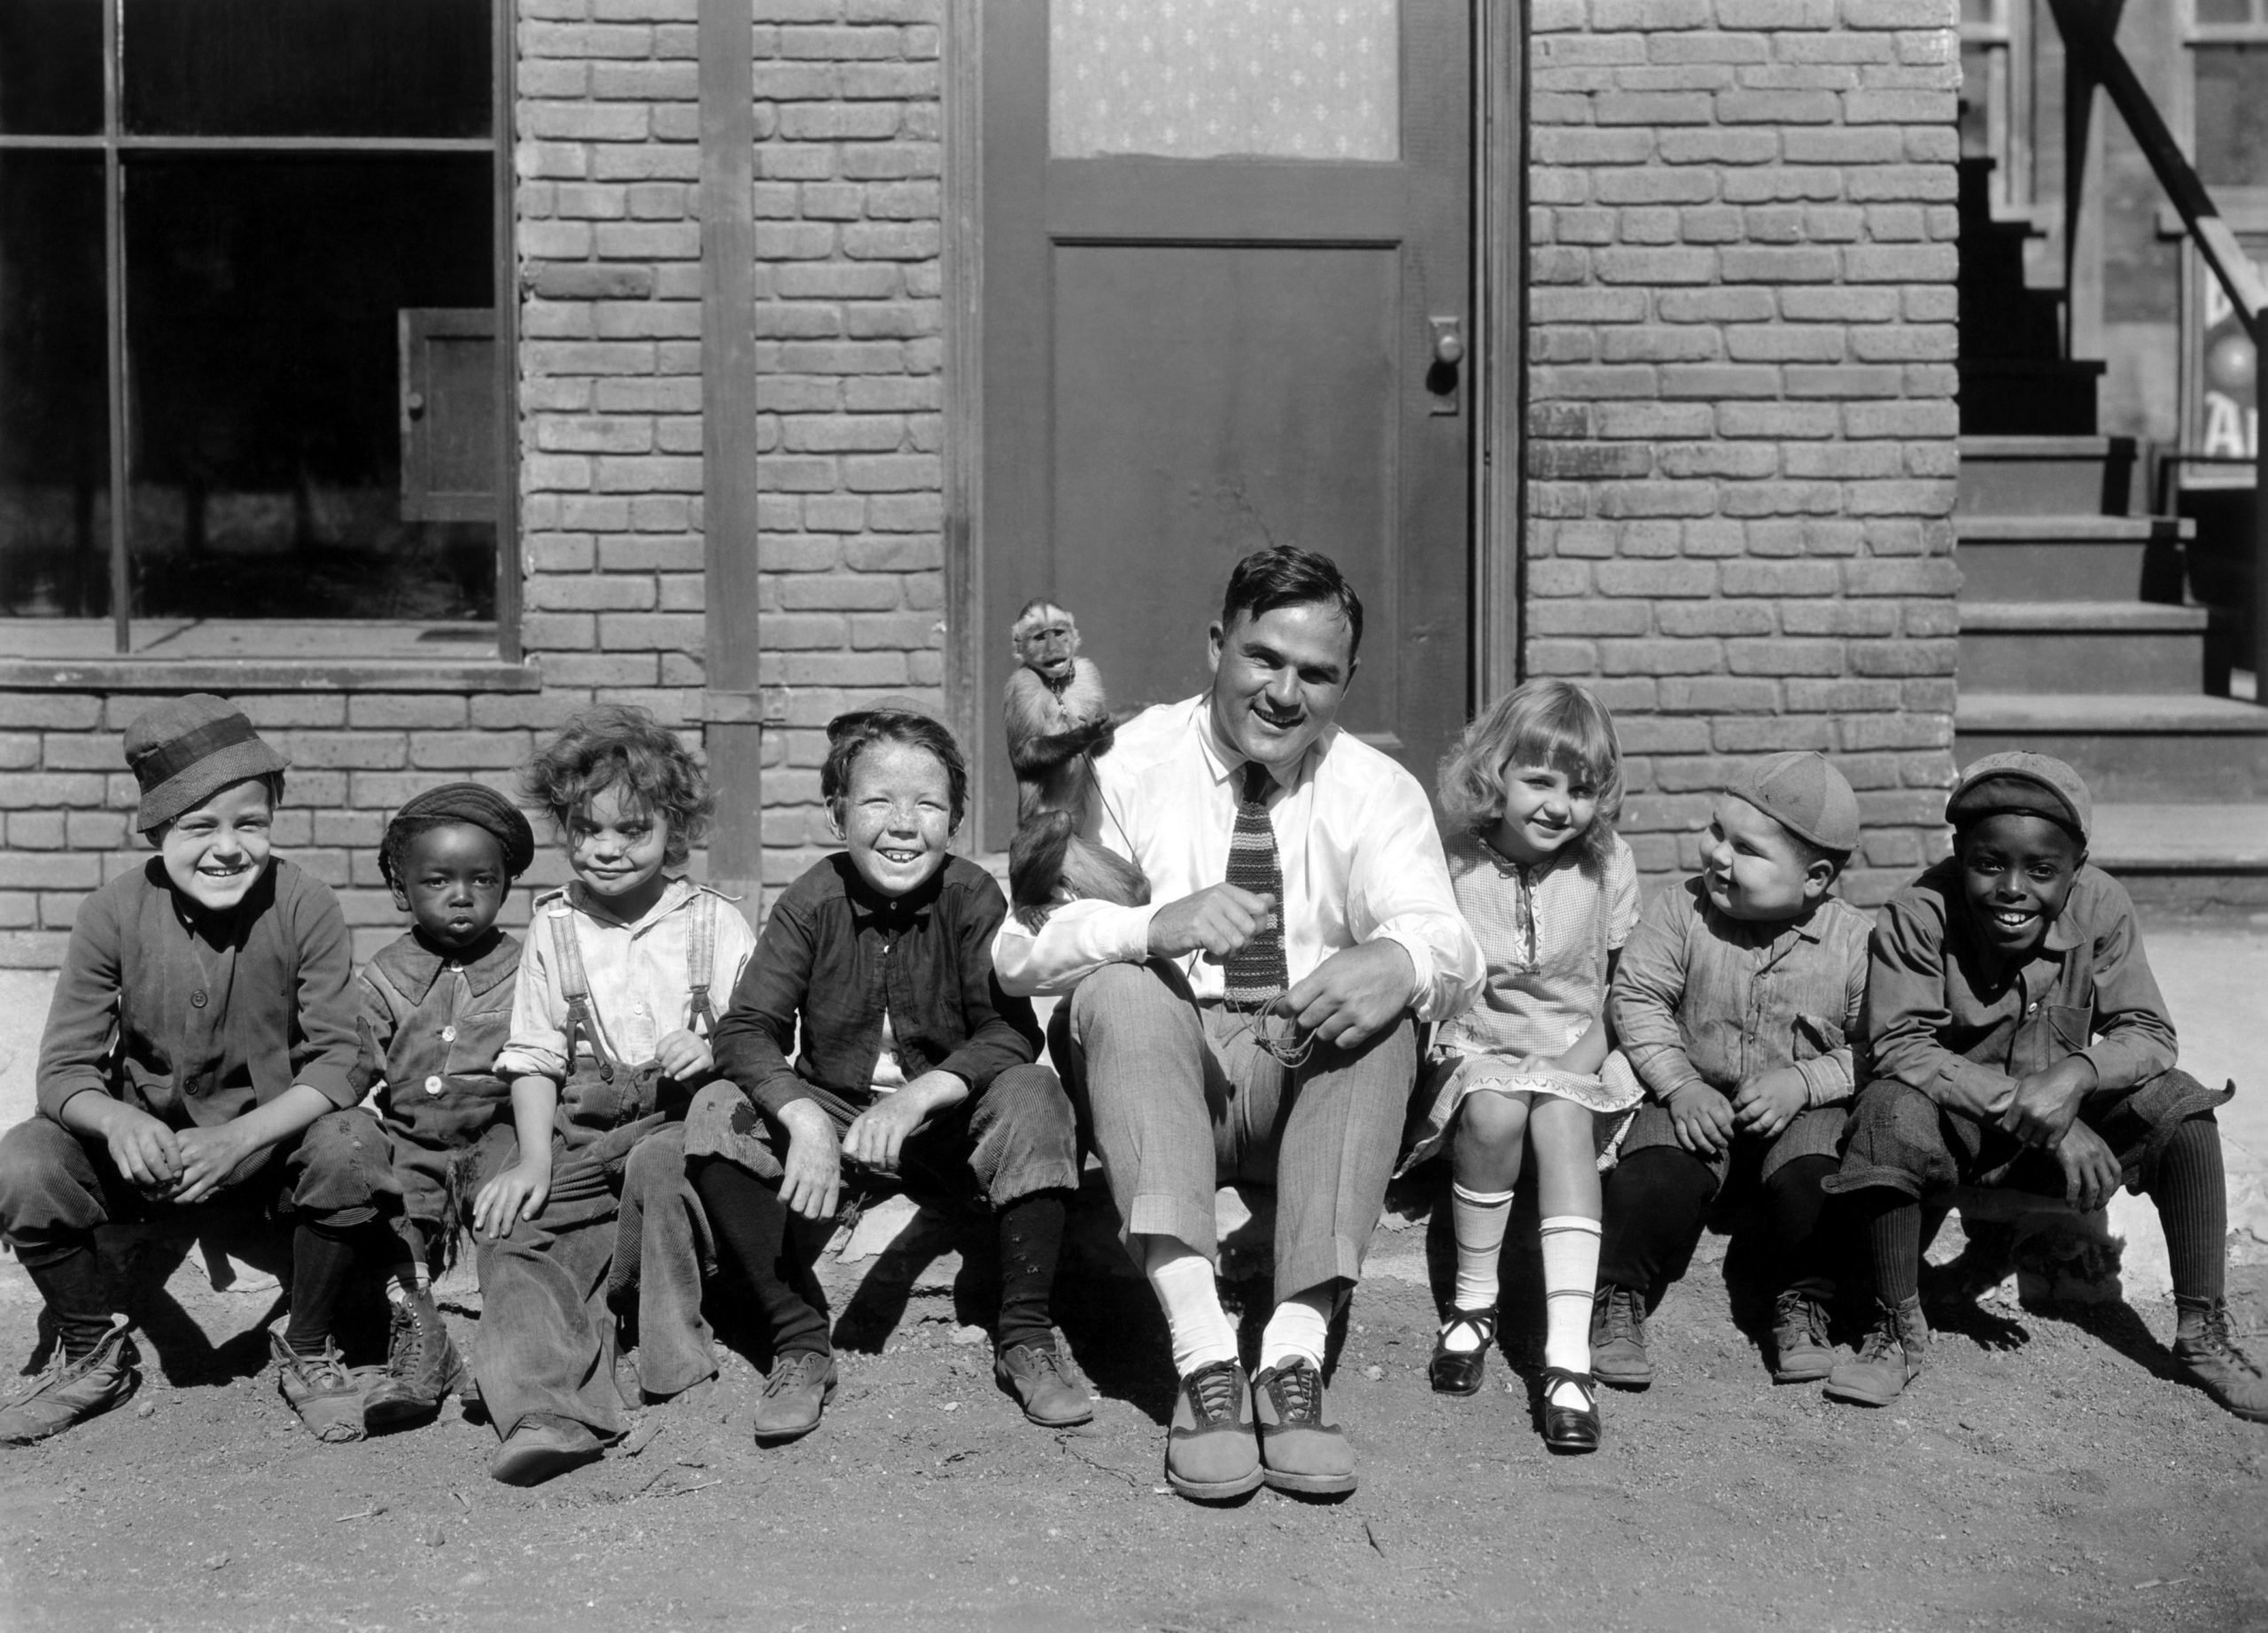 hal-roach-and-the-little-rascals